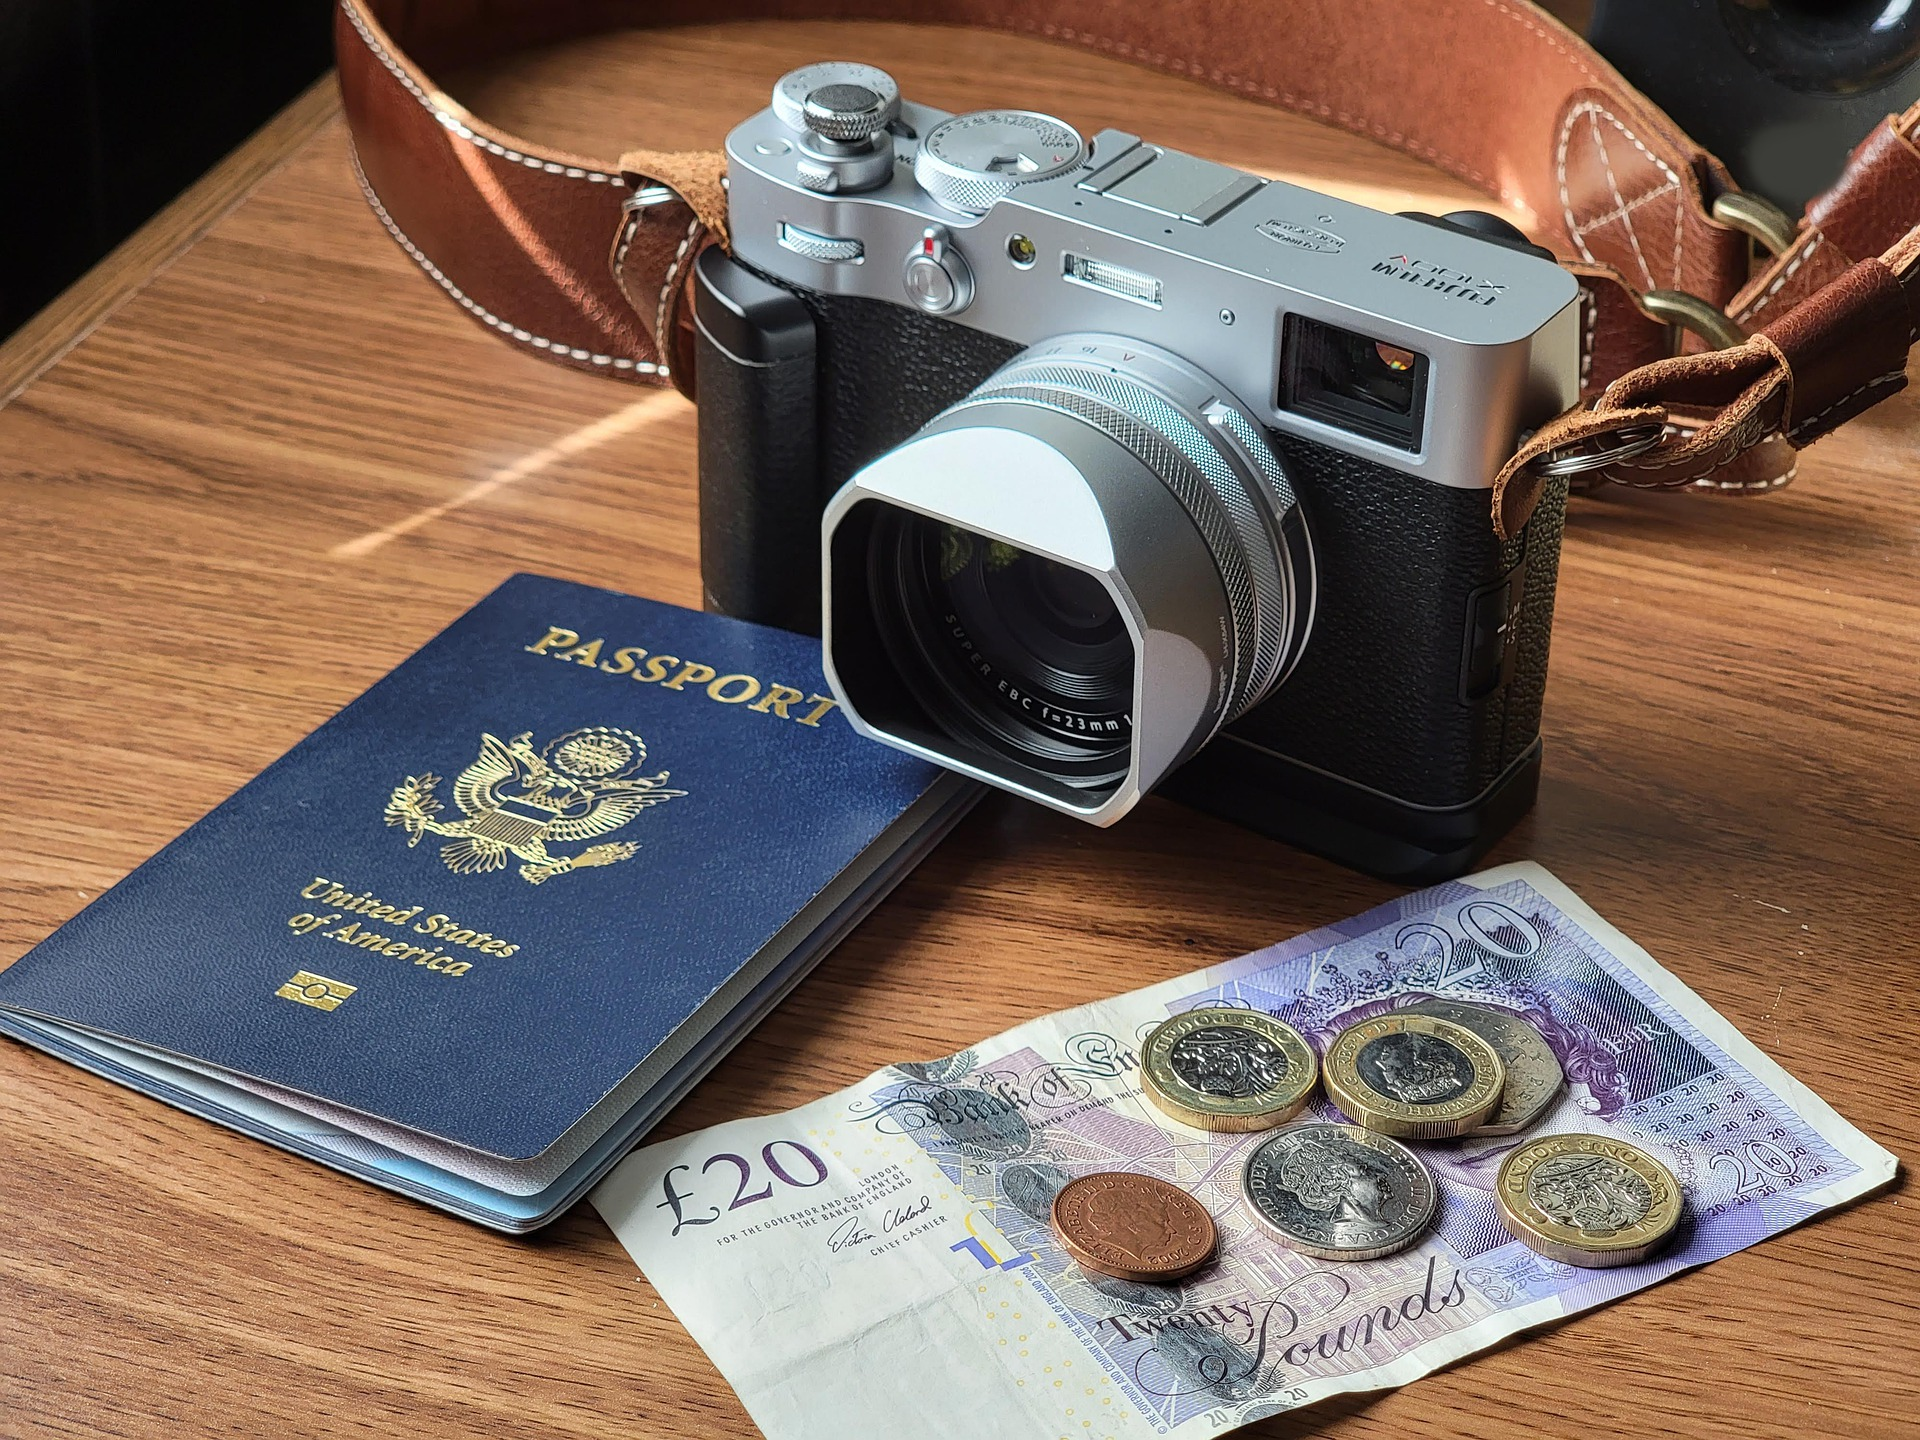 camera sits on table beside money and a passport